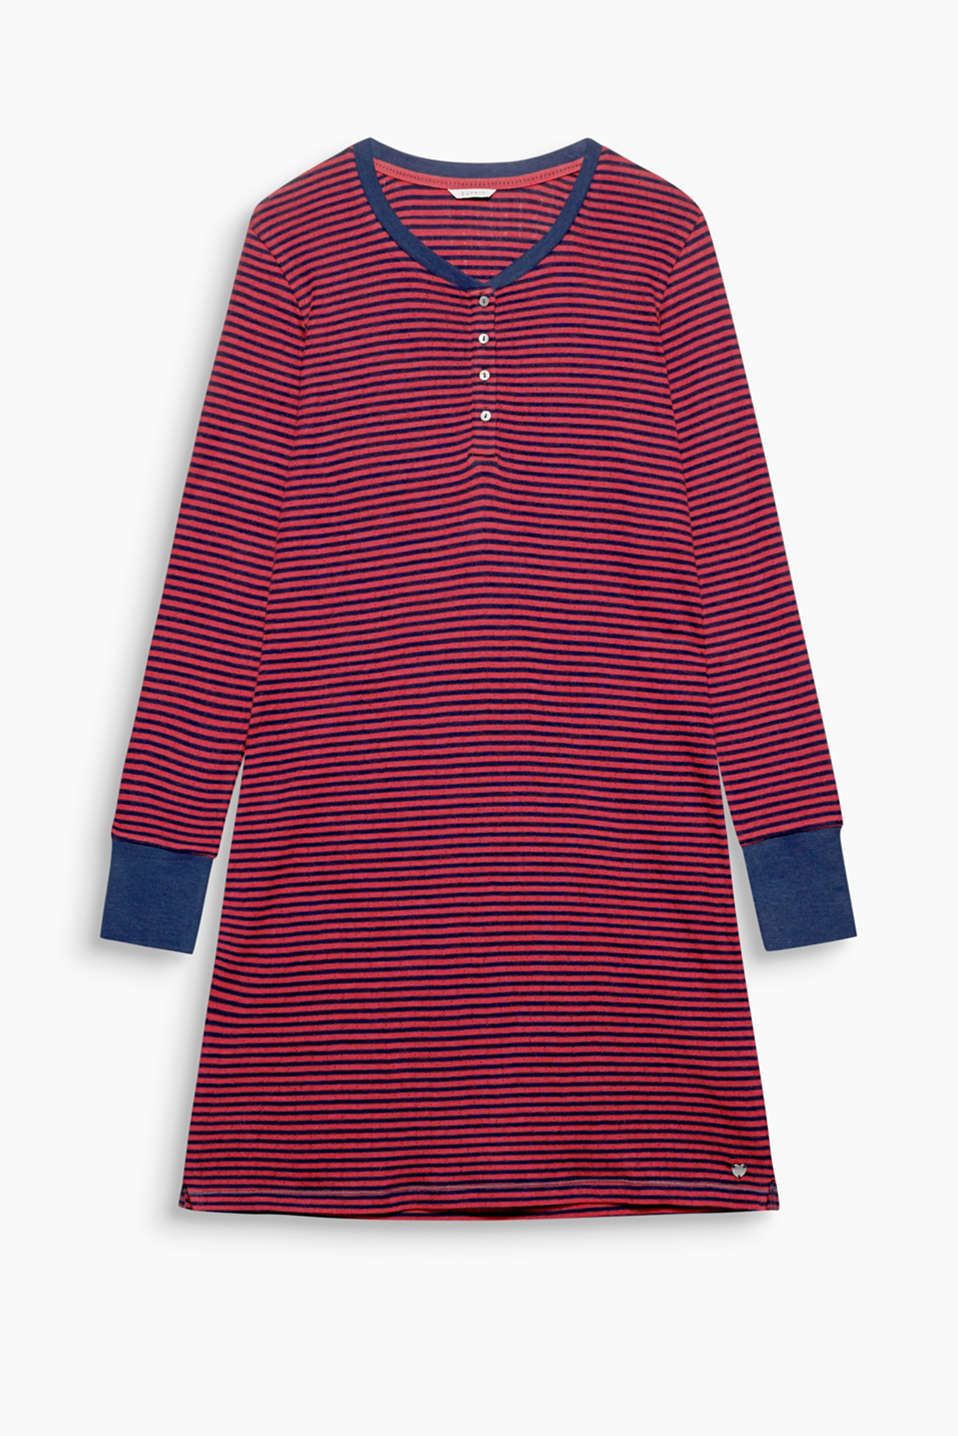 Airy, striped jersey nightshirt with an open-work pattern, 100% cotton